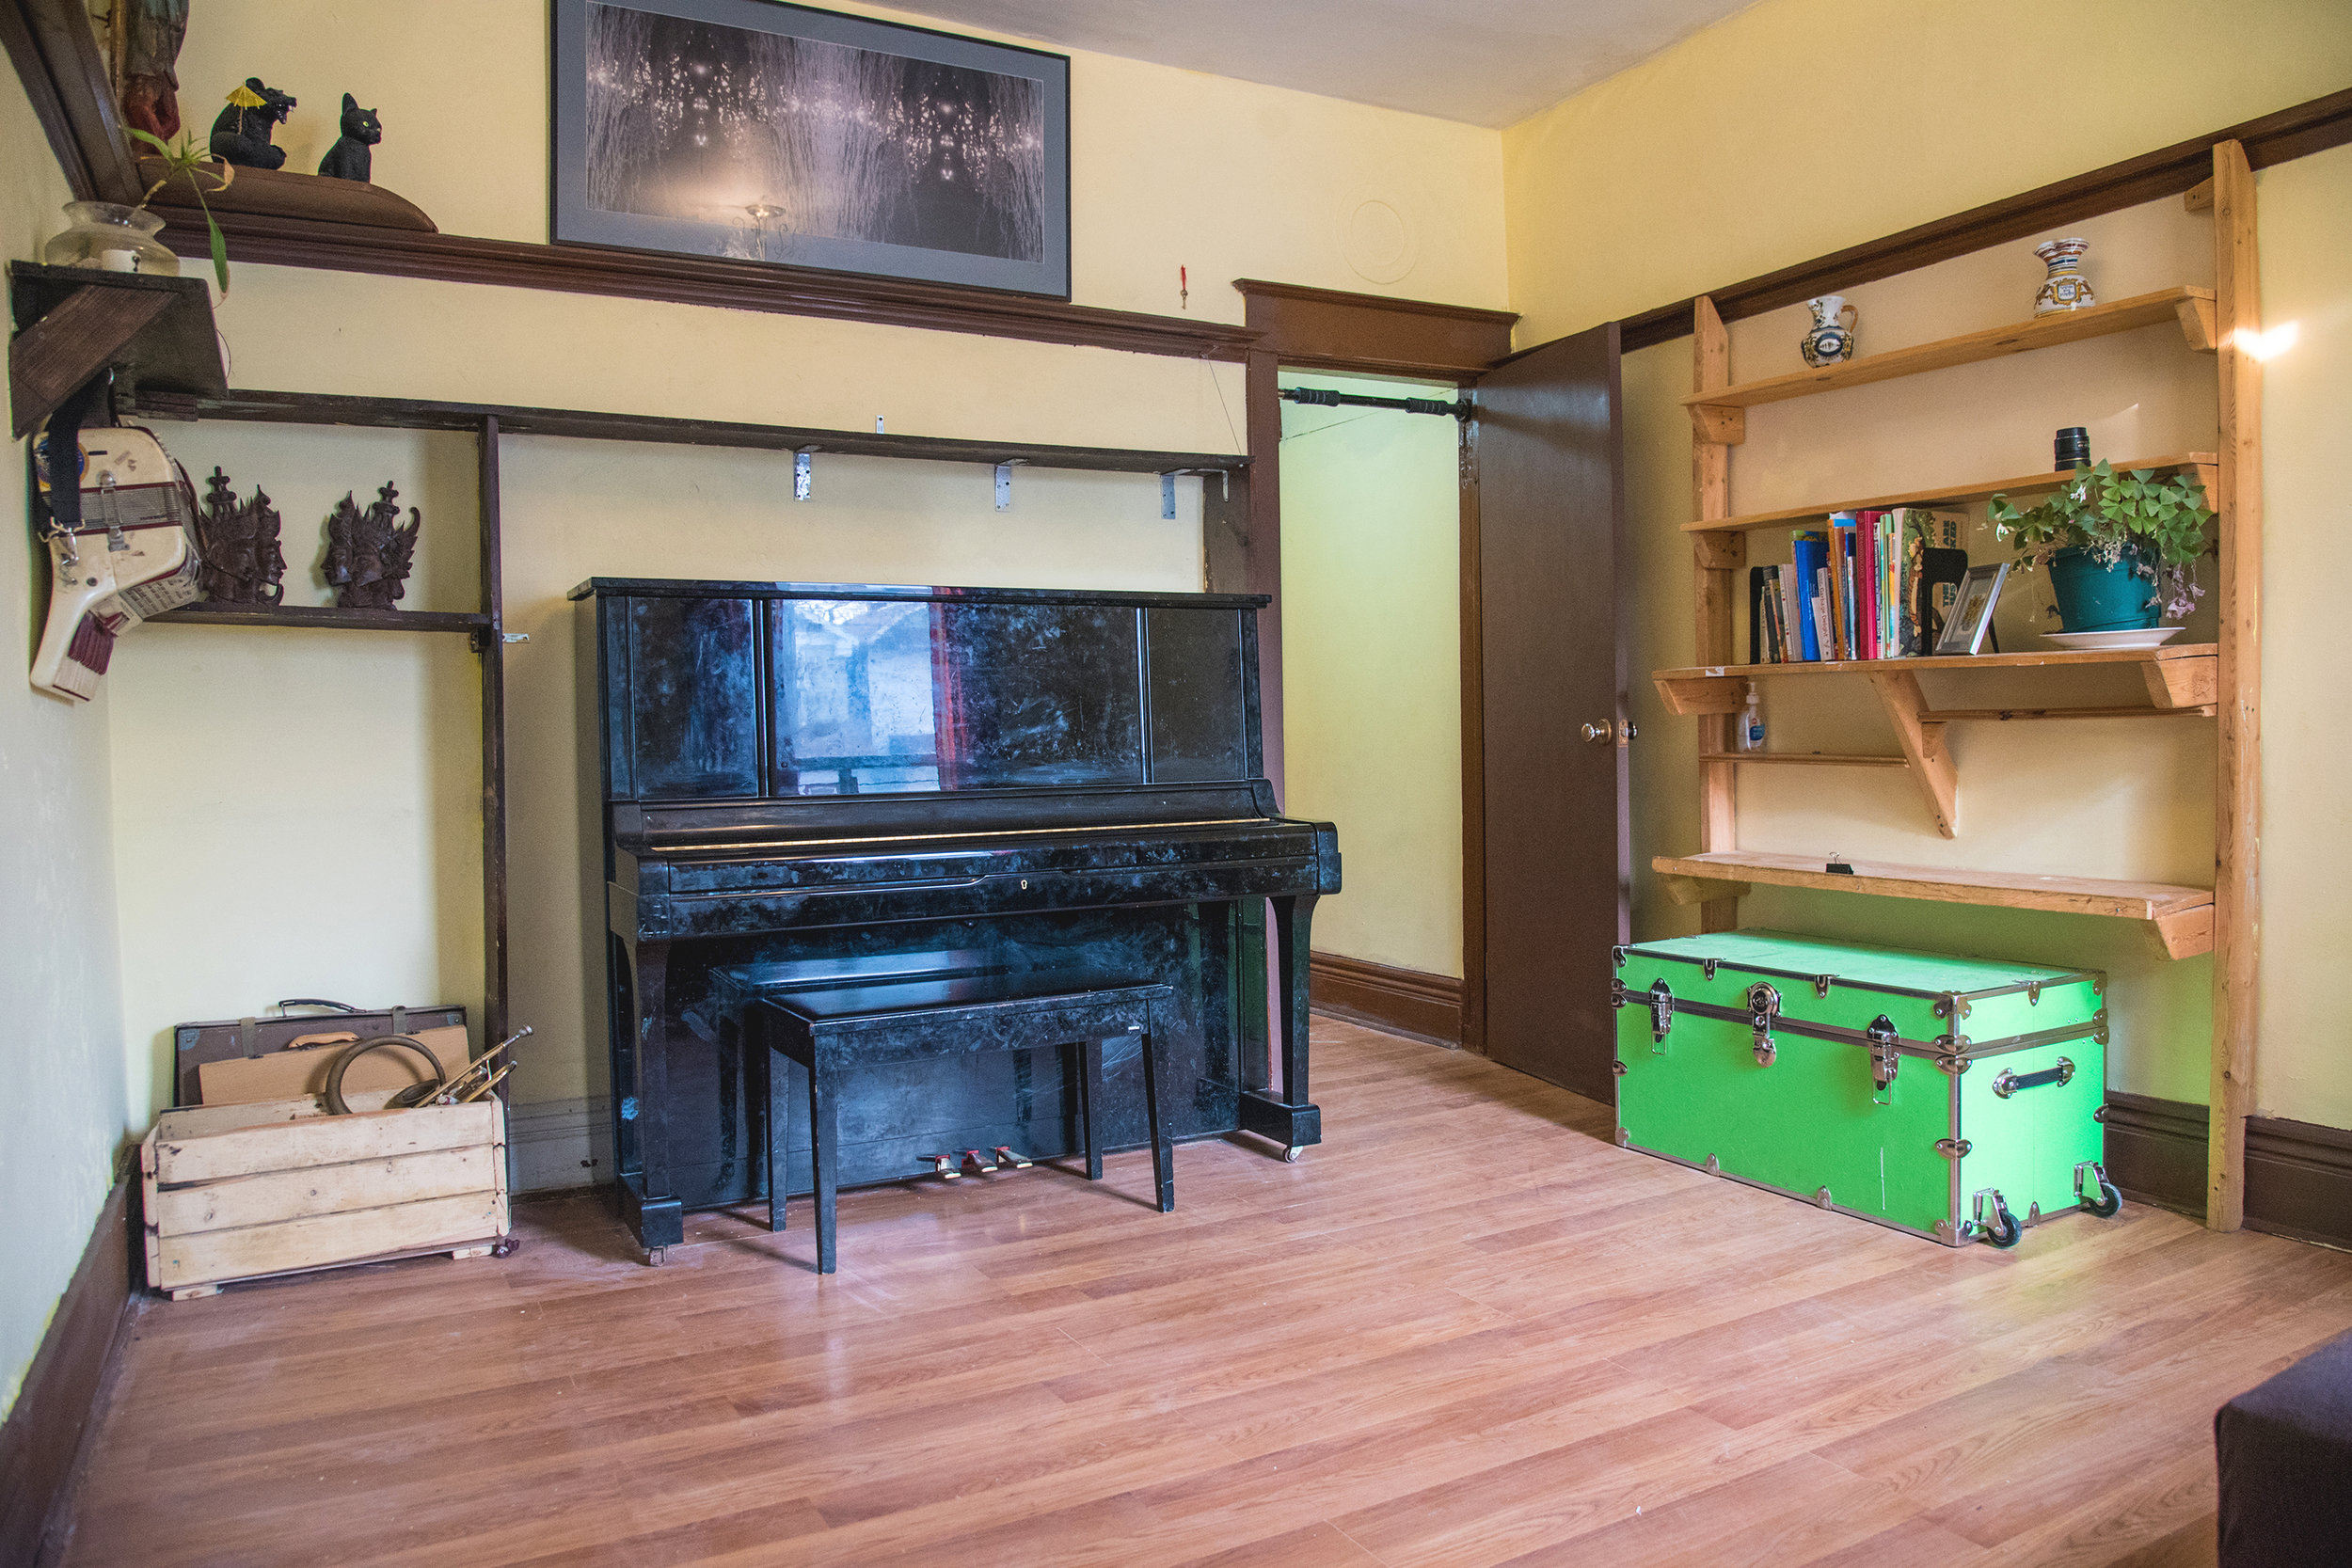 lil-yellow-house-front-room-alt-2.jpg